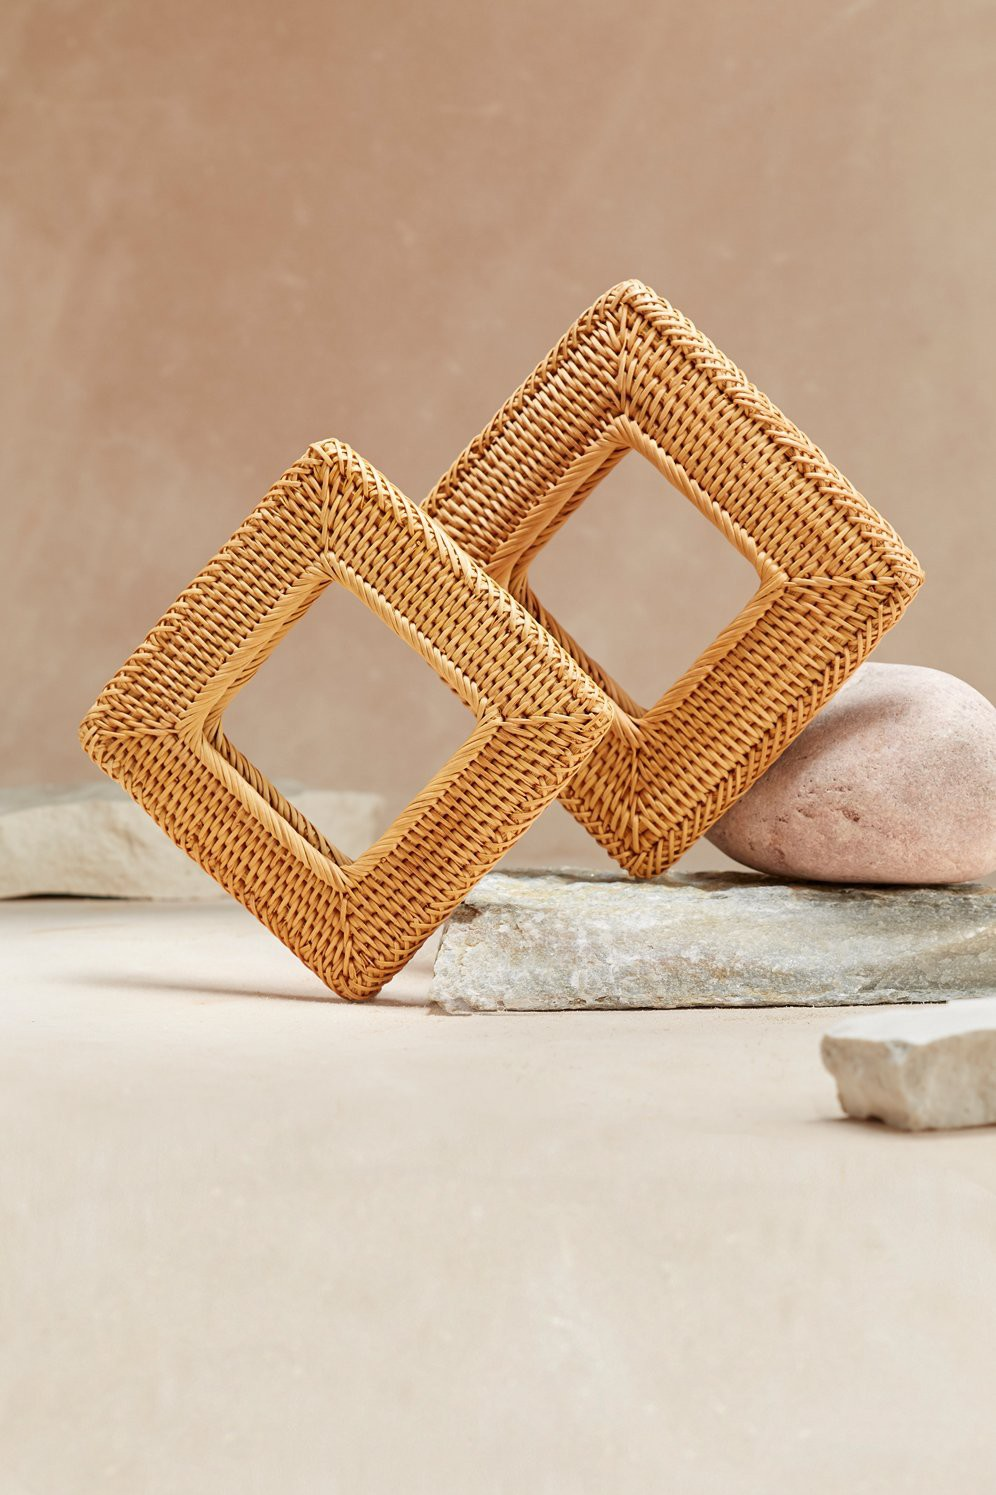 Cult Gaia Rattan Square Bangle - Natural                                                             $ 60.00 USD